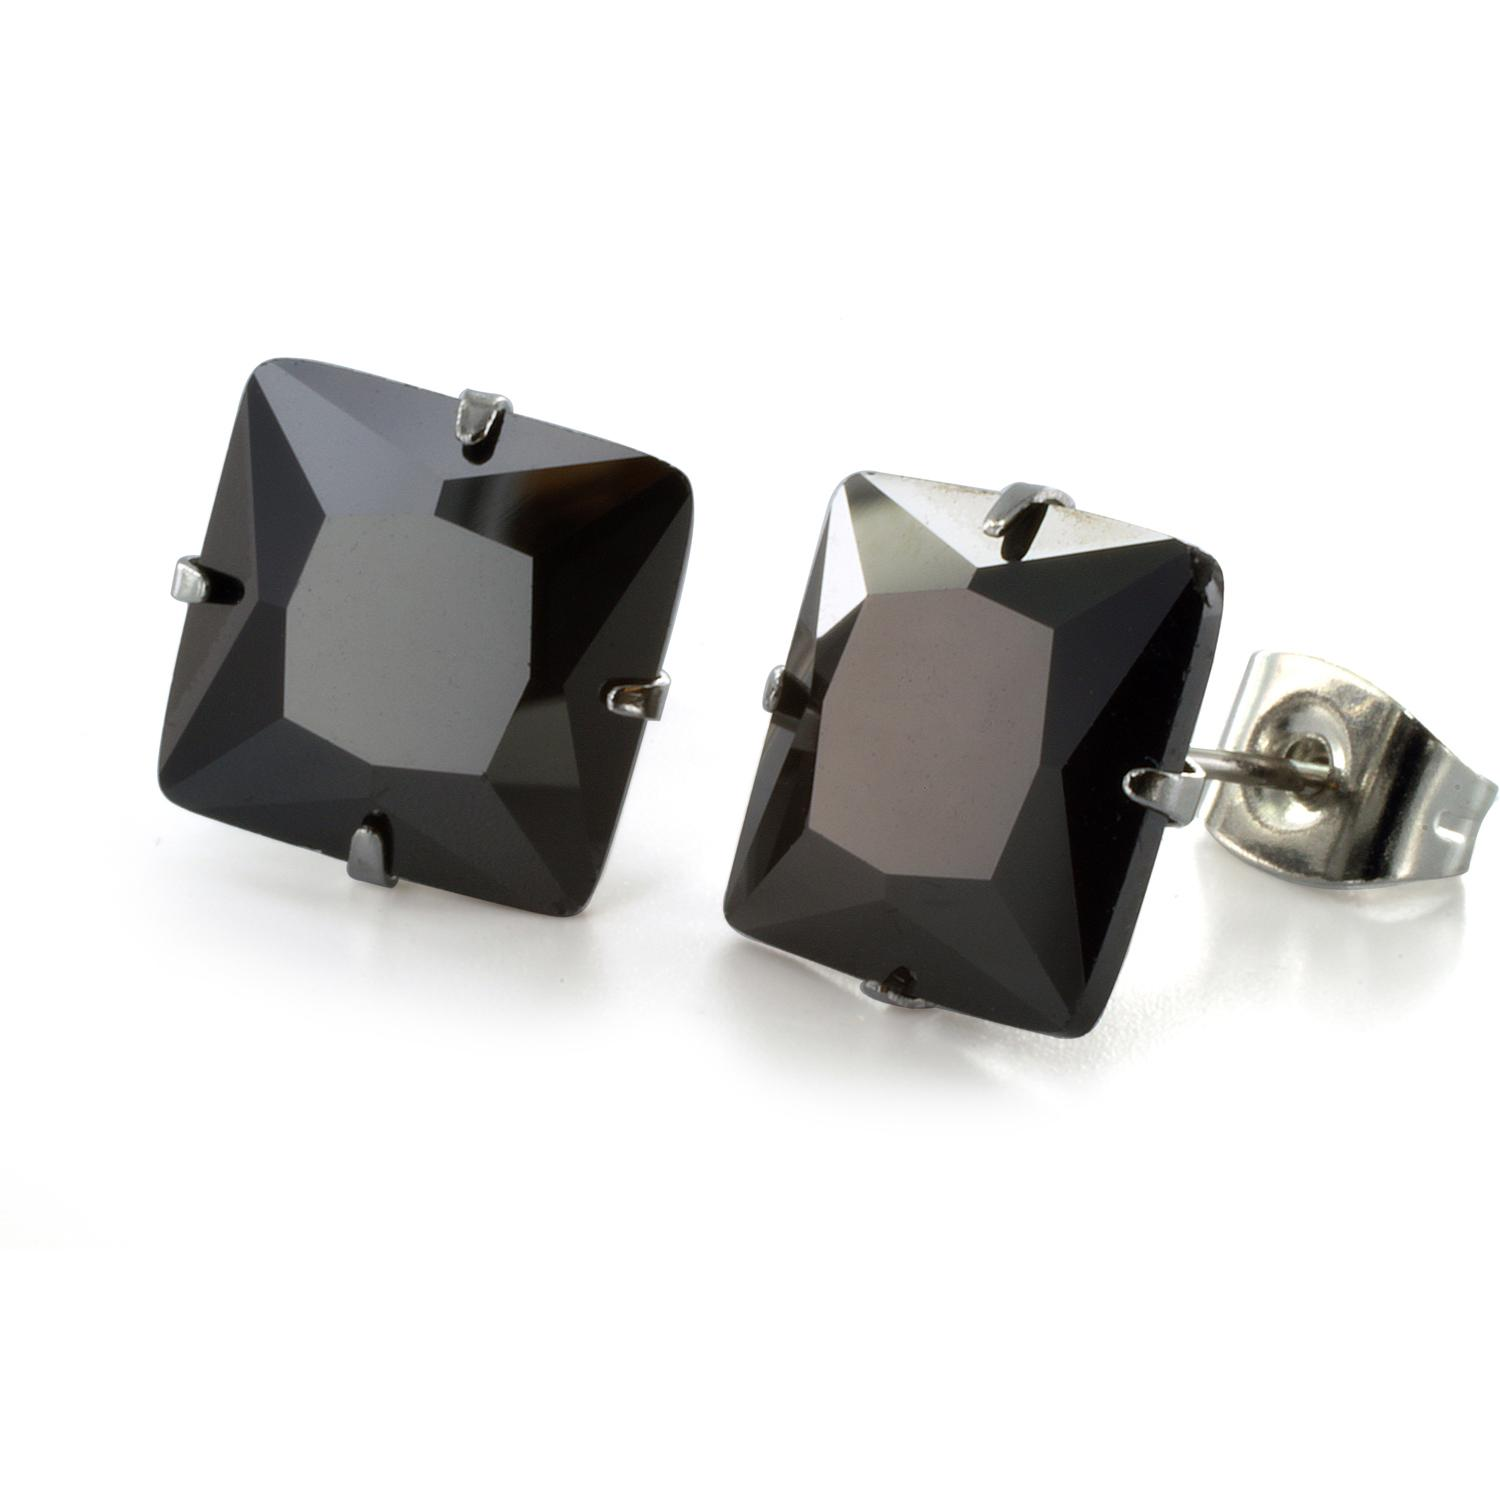 Stainless Steel Stud Earrings with Princess Cut Square Black CZ - 10 mm